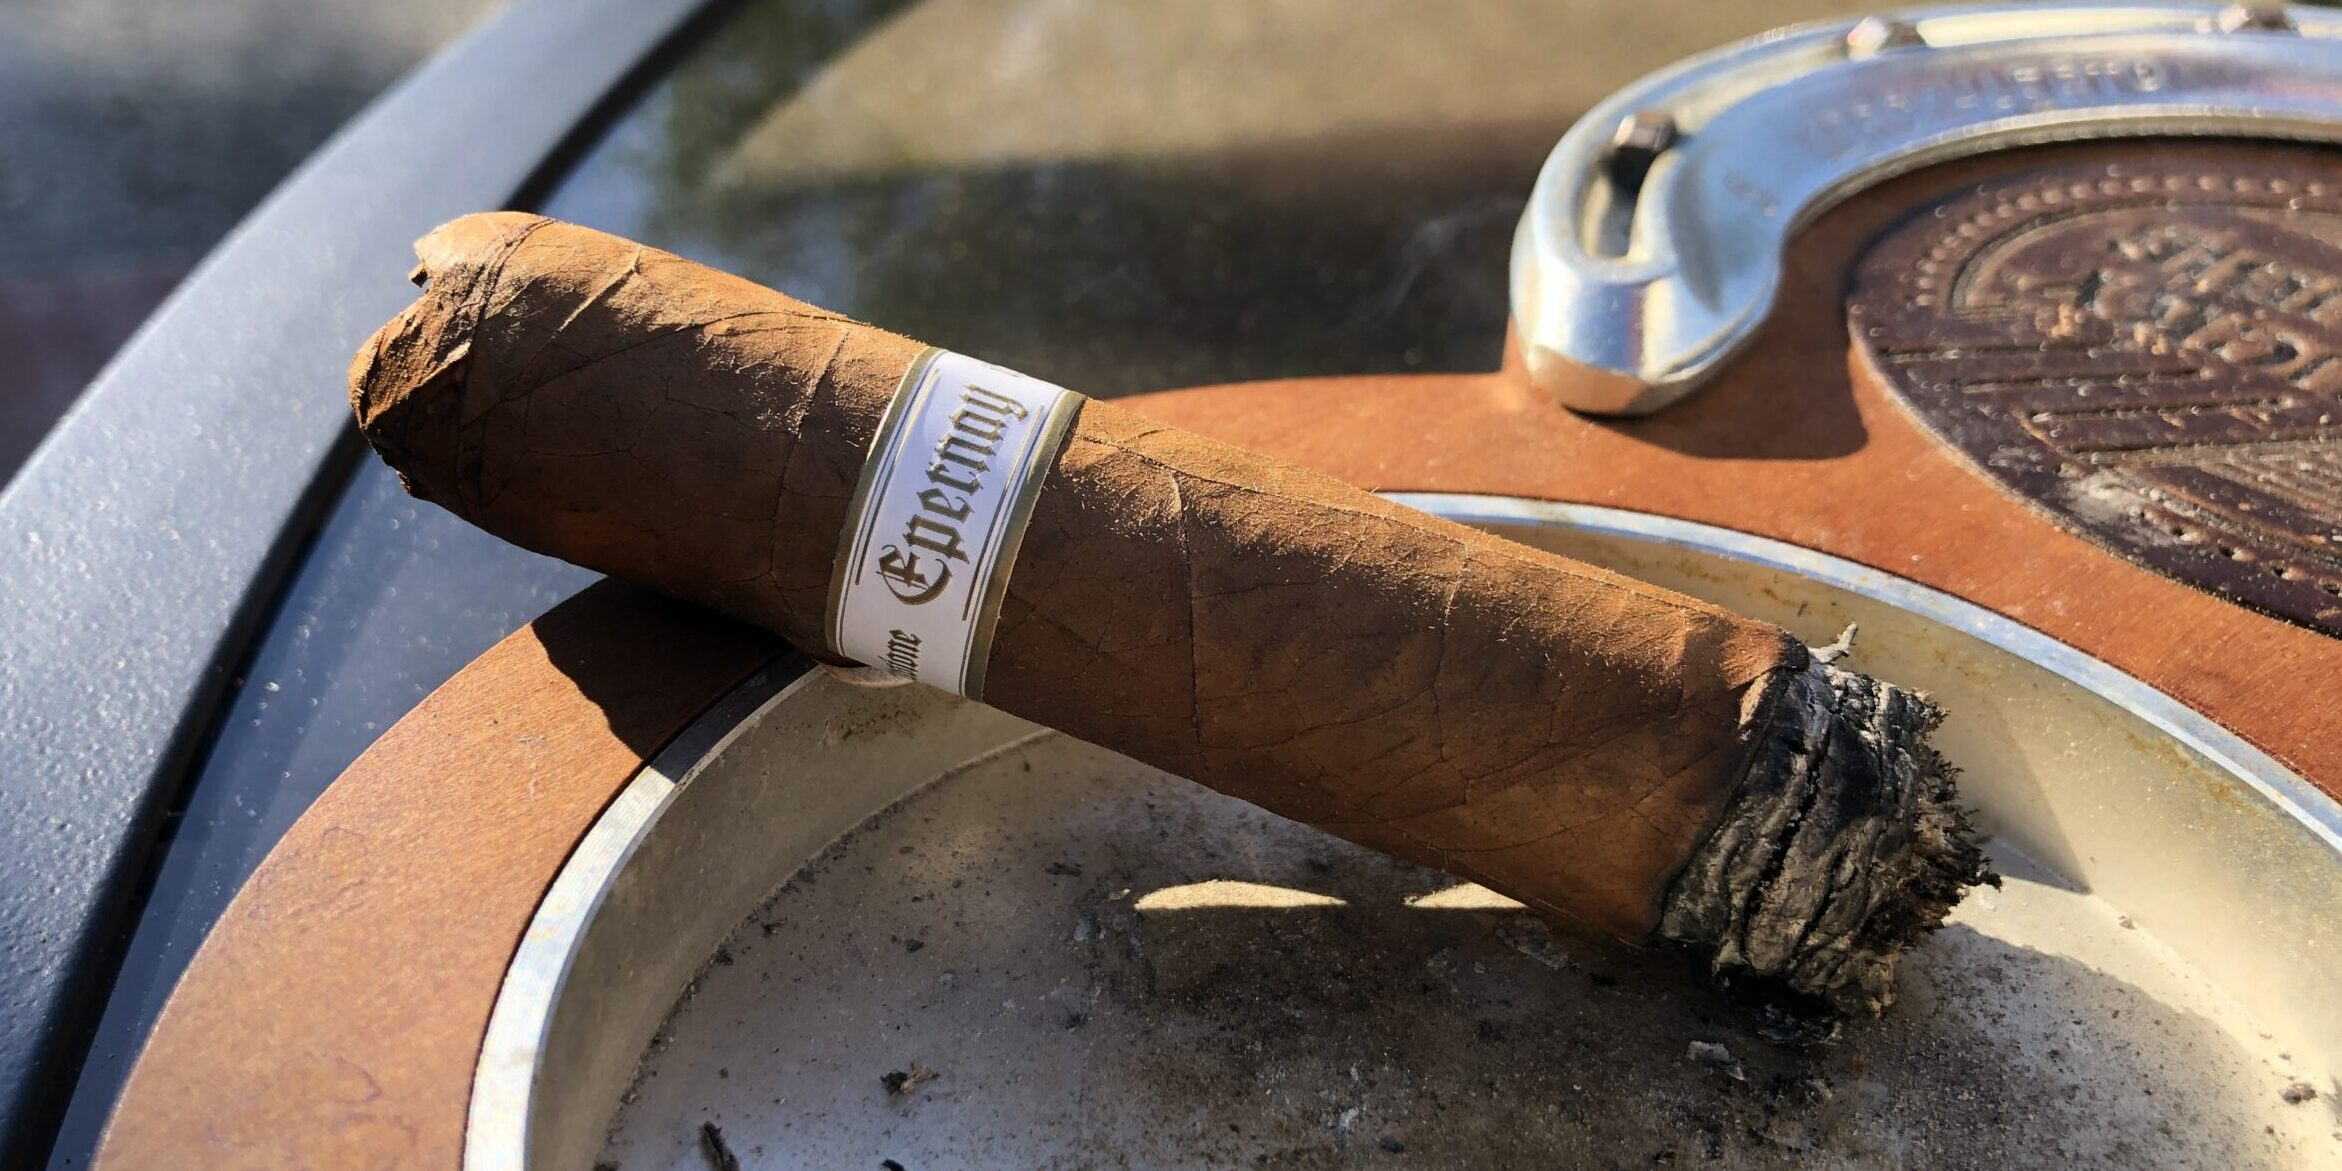 Read more about the article Illusione Epernay 10th Anniversary D'Aosta Toro Cigar Review